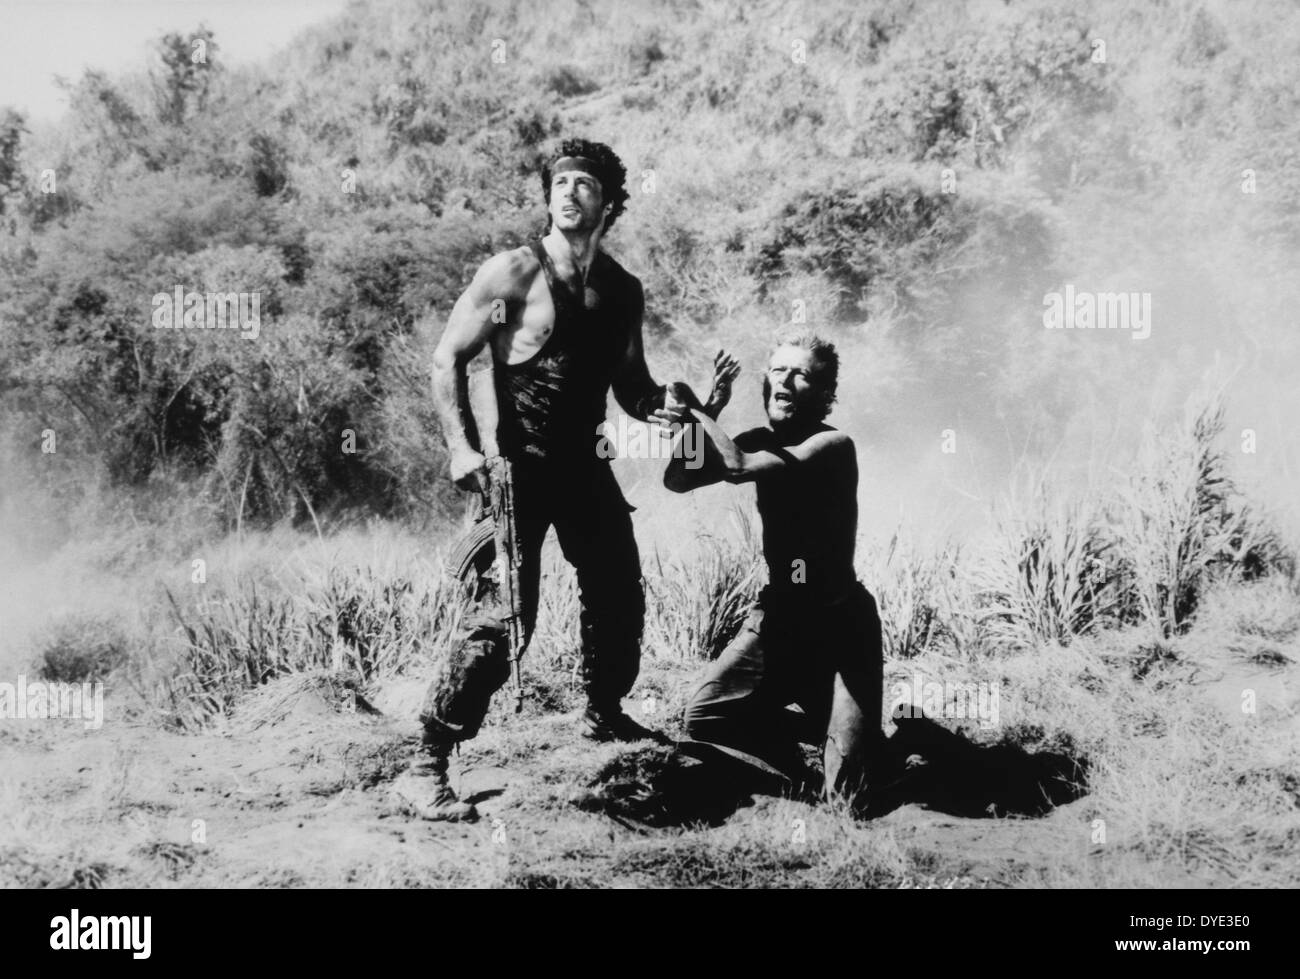 Sylvester Stallone and Unidentified Actor, on-set of the Film, 'Rambo: First Blood Part II', 1985 - Stock Image